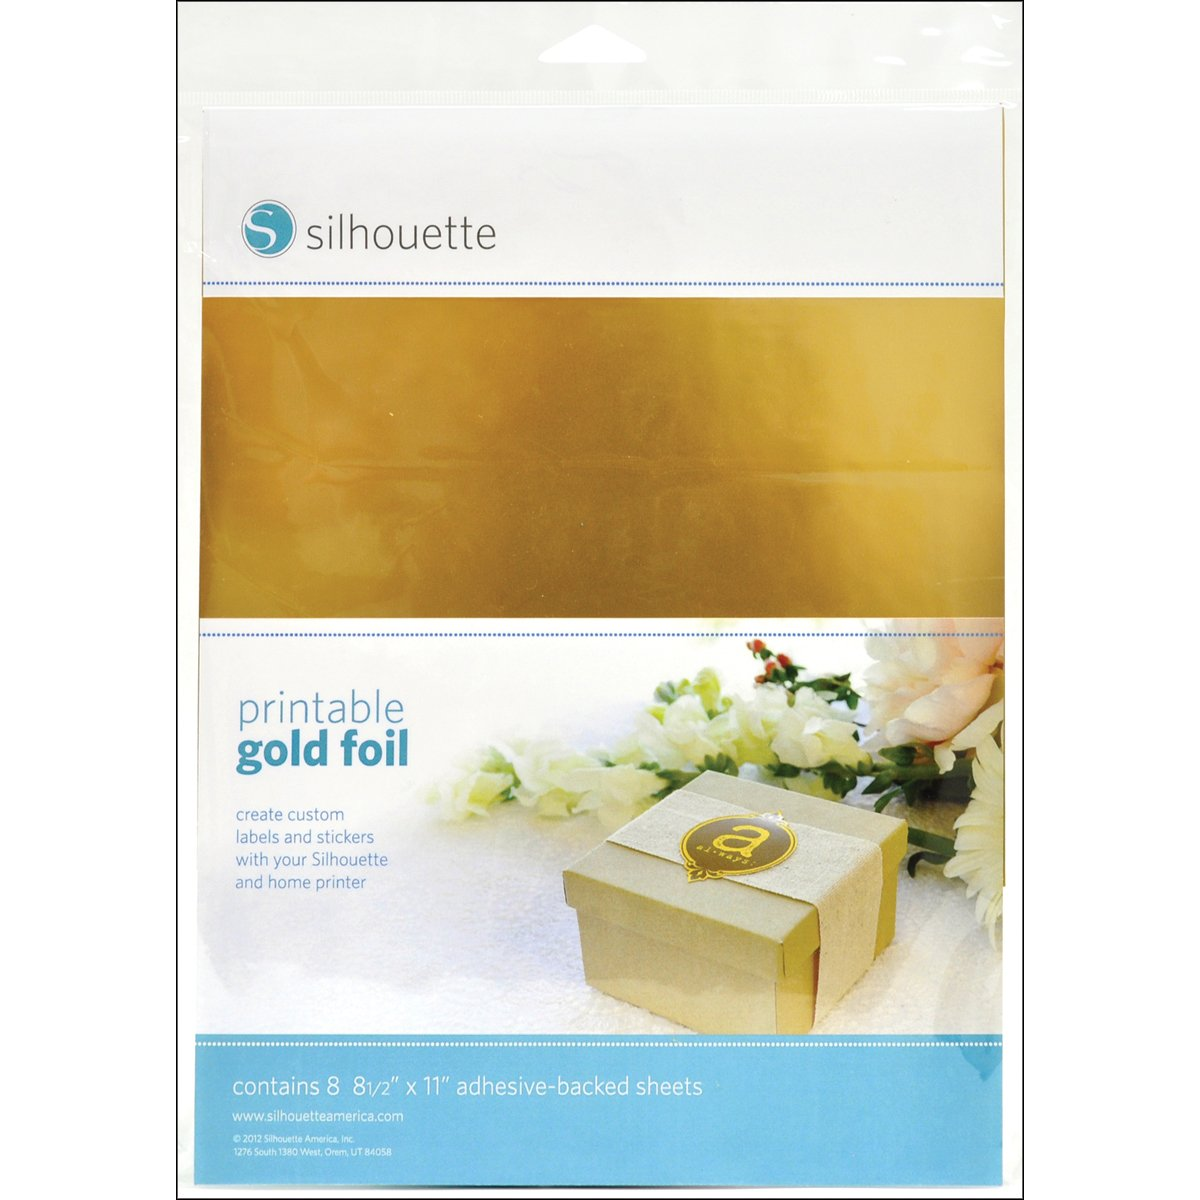 image regarding Printable Foil Paper titled Silhouette Printable Gold Foil